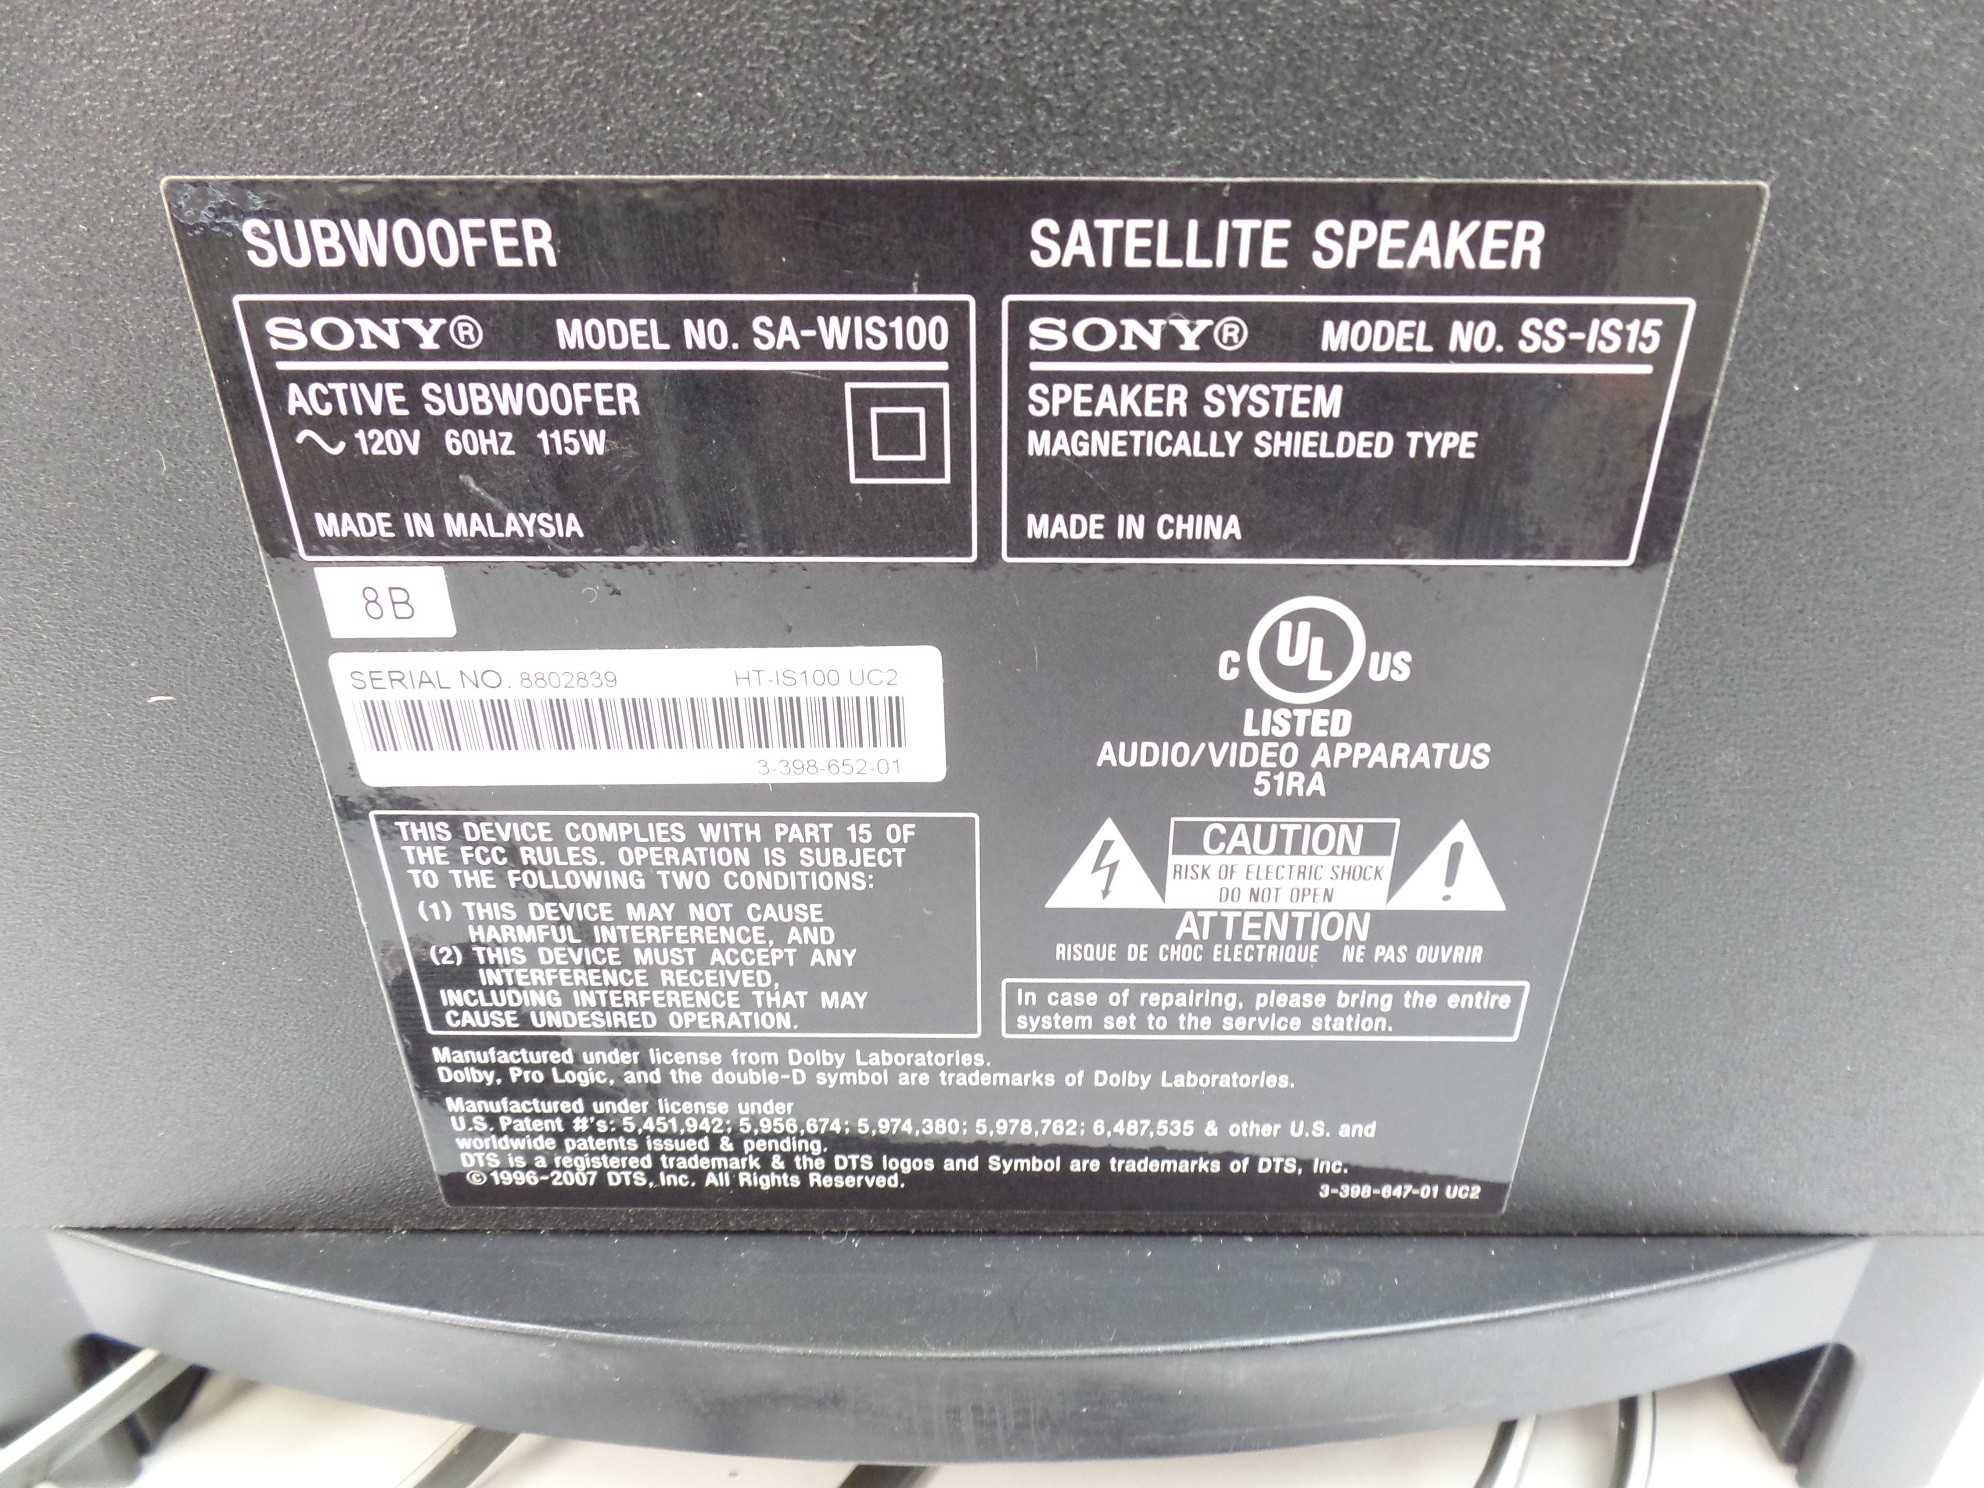 Sony Subwoofer SA-WIS100 Only